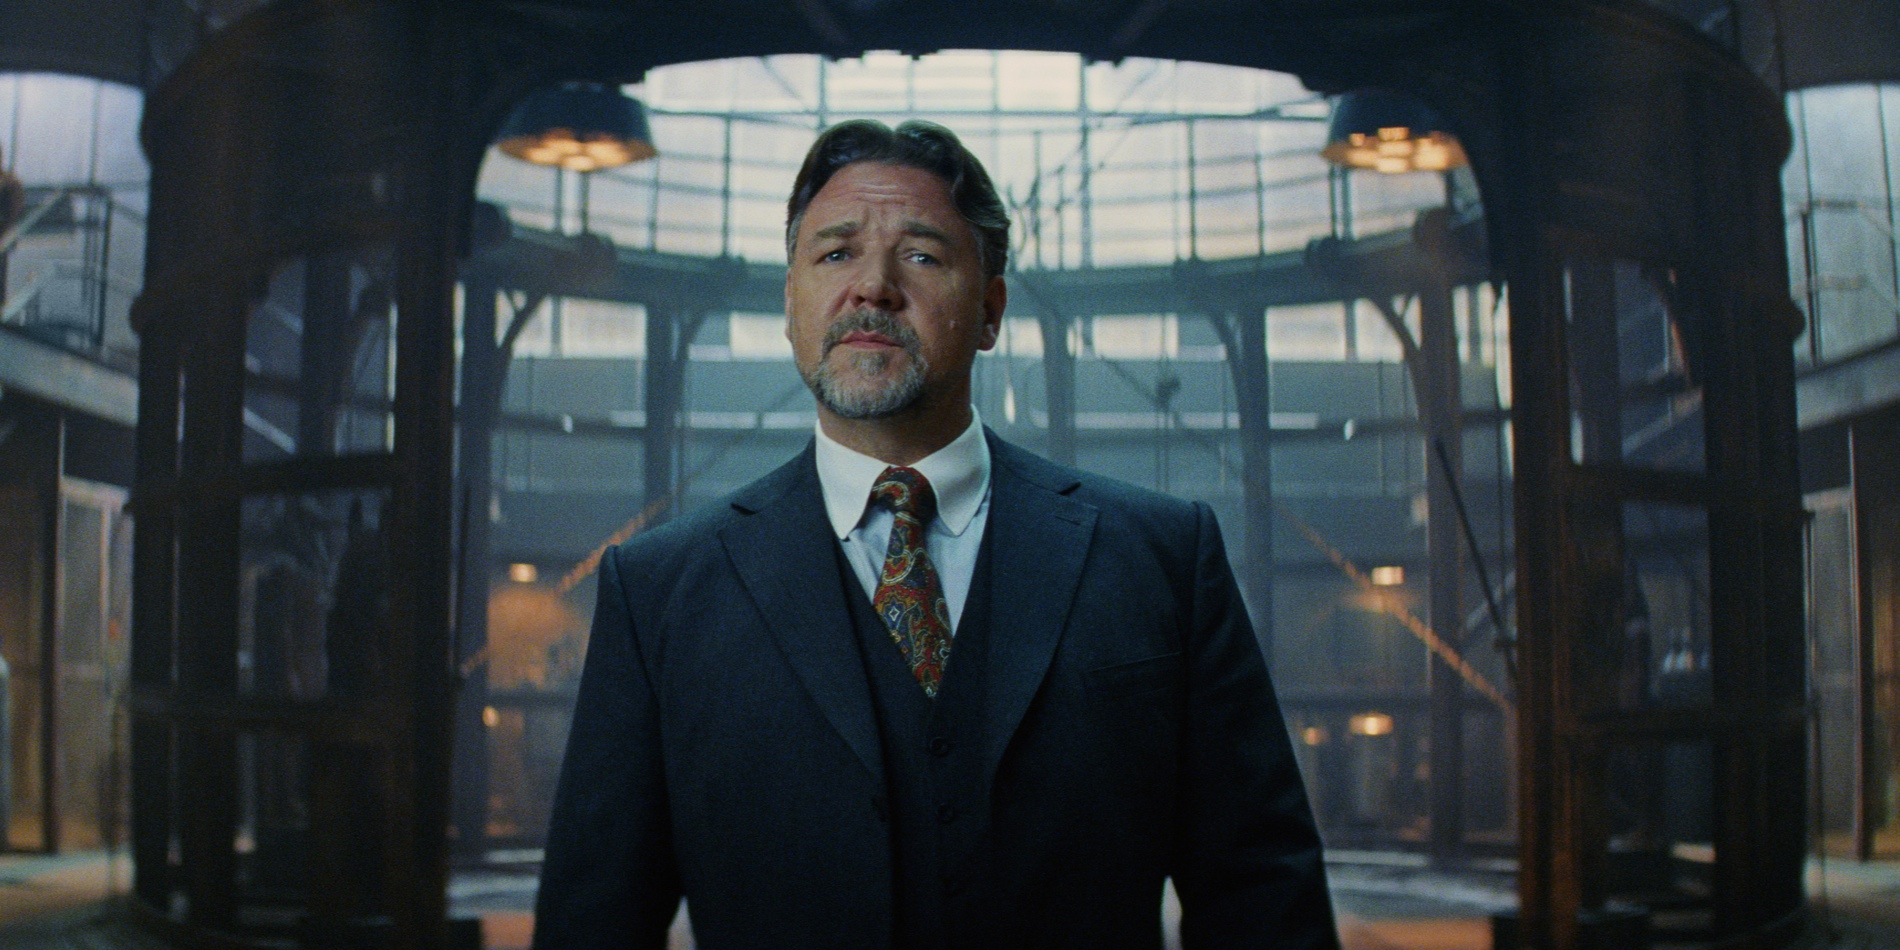 russell crowe movies | umr